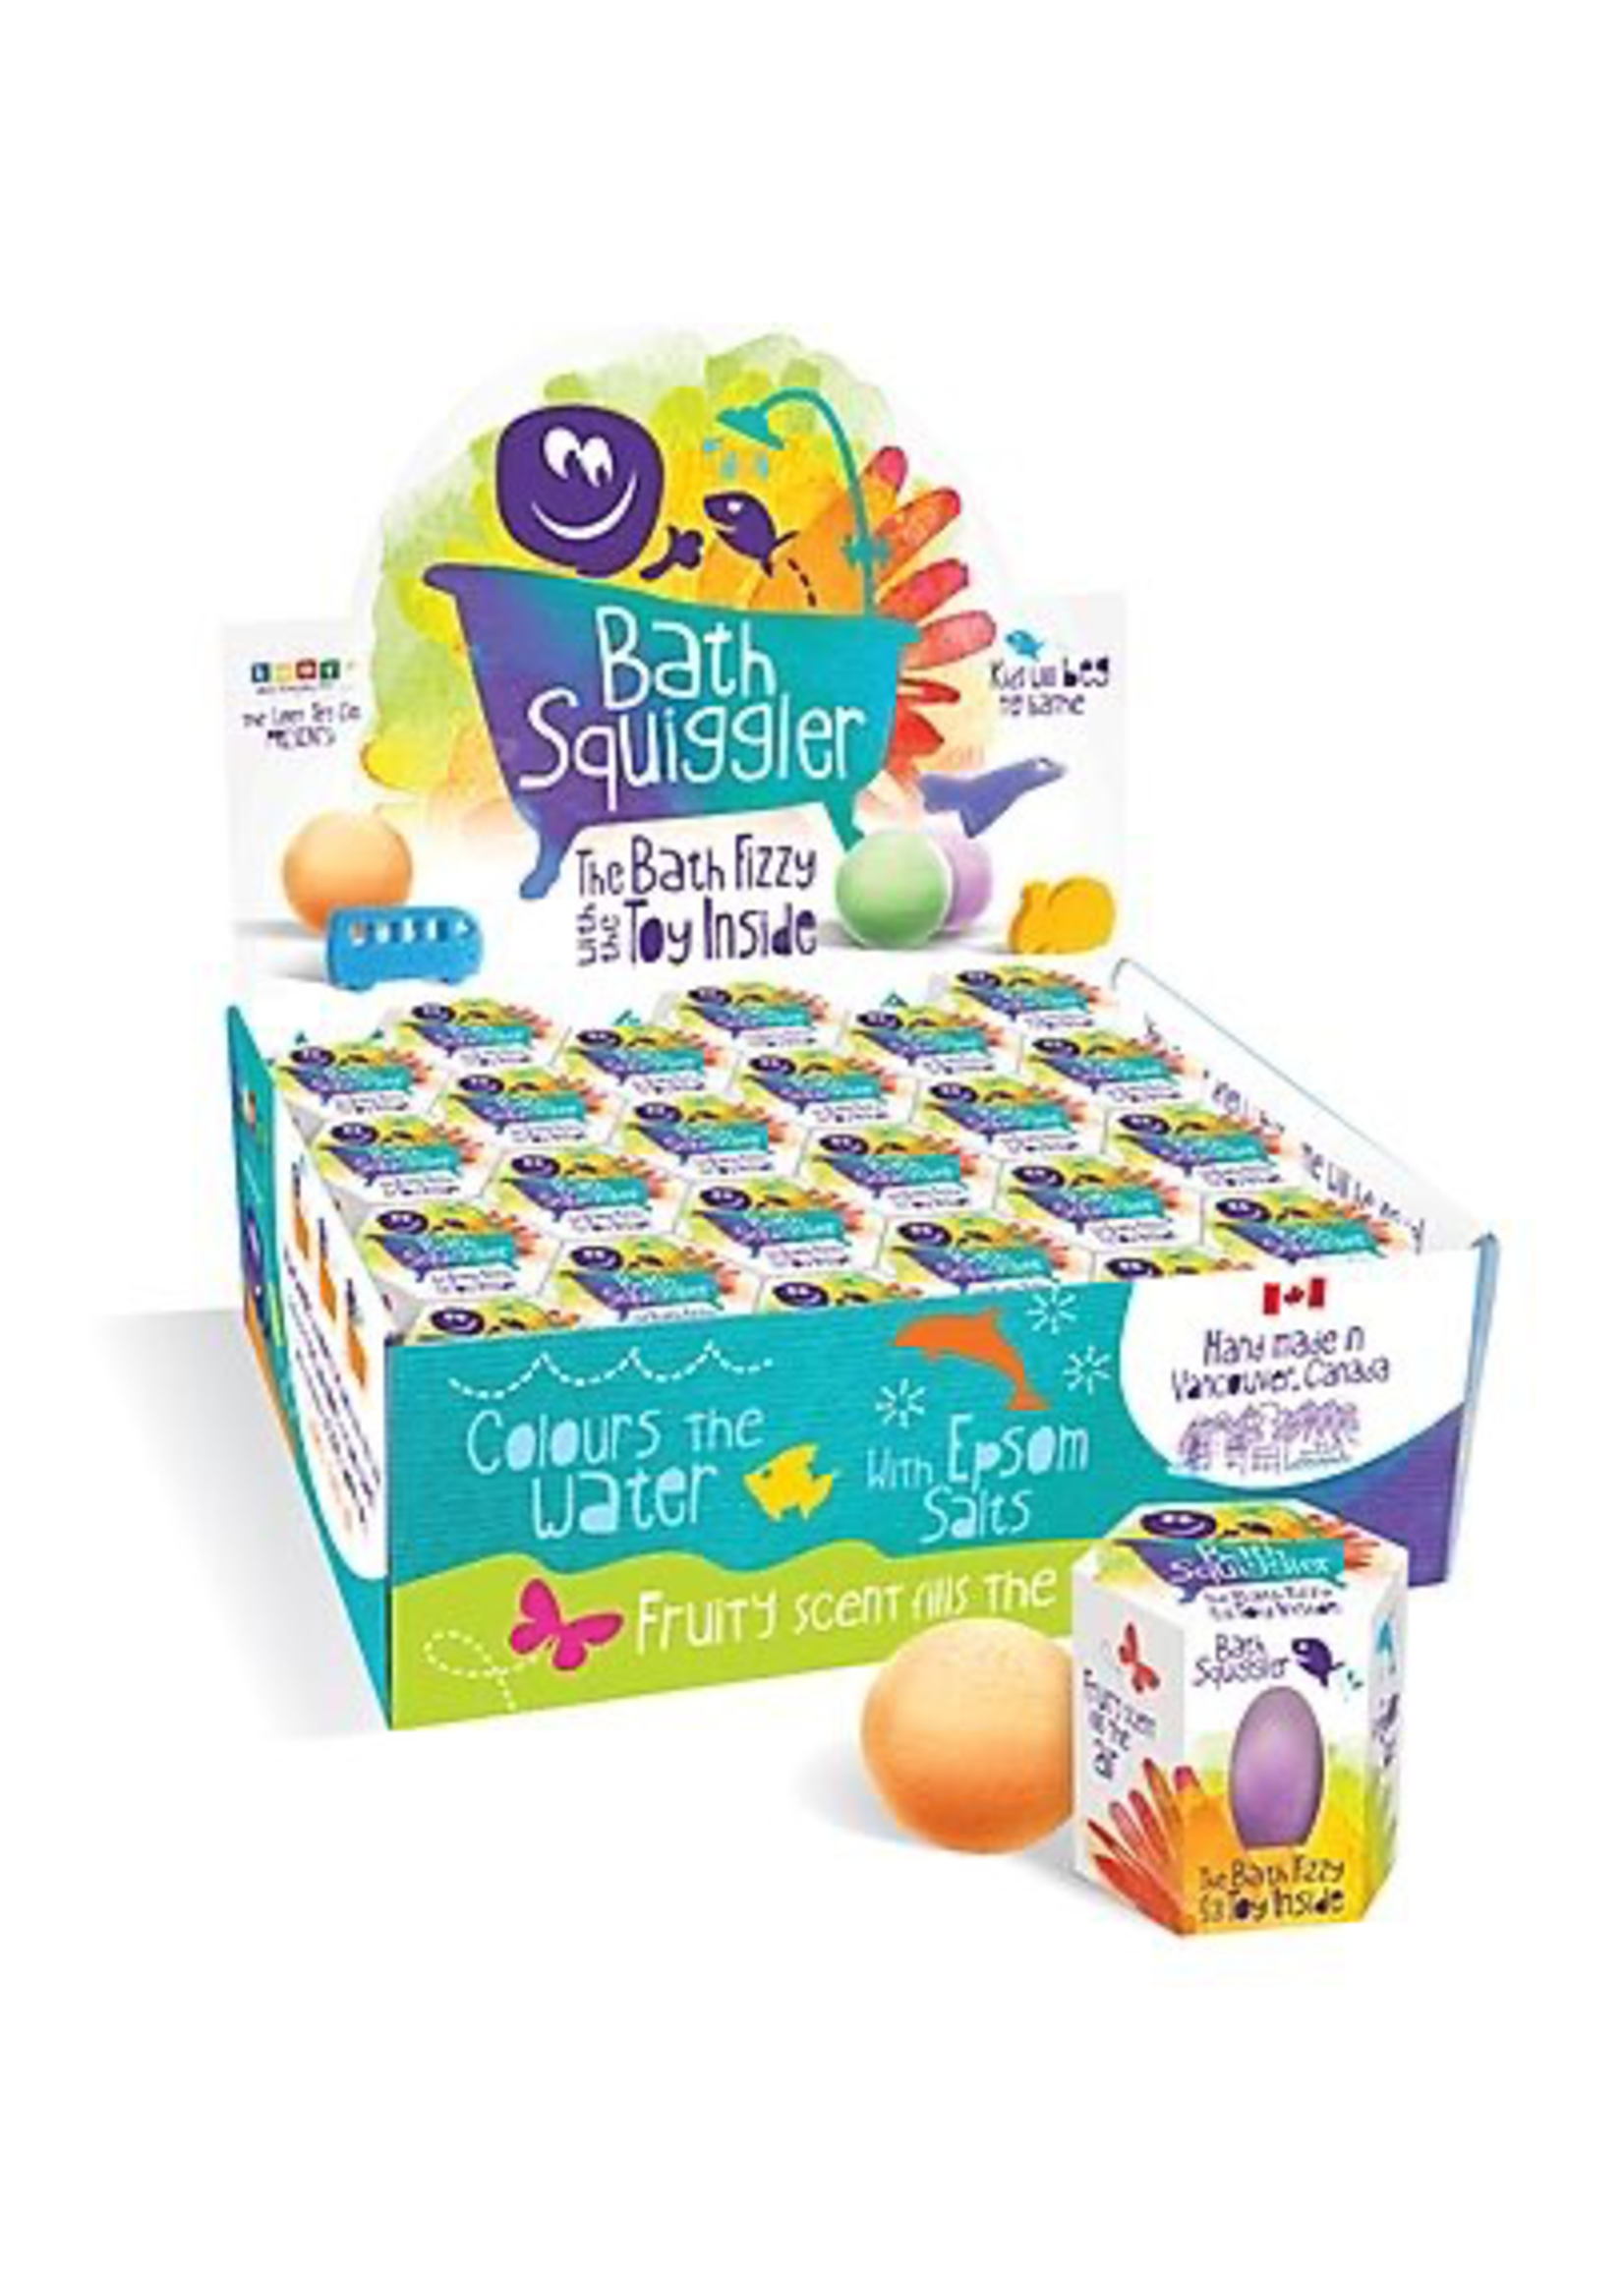 Bath Squigglers Loot Toys, Bath Squigglers, Bath Bomb Scented Fizzy with Hidden toy